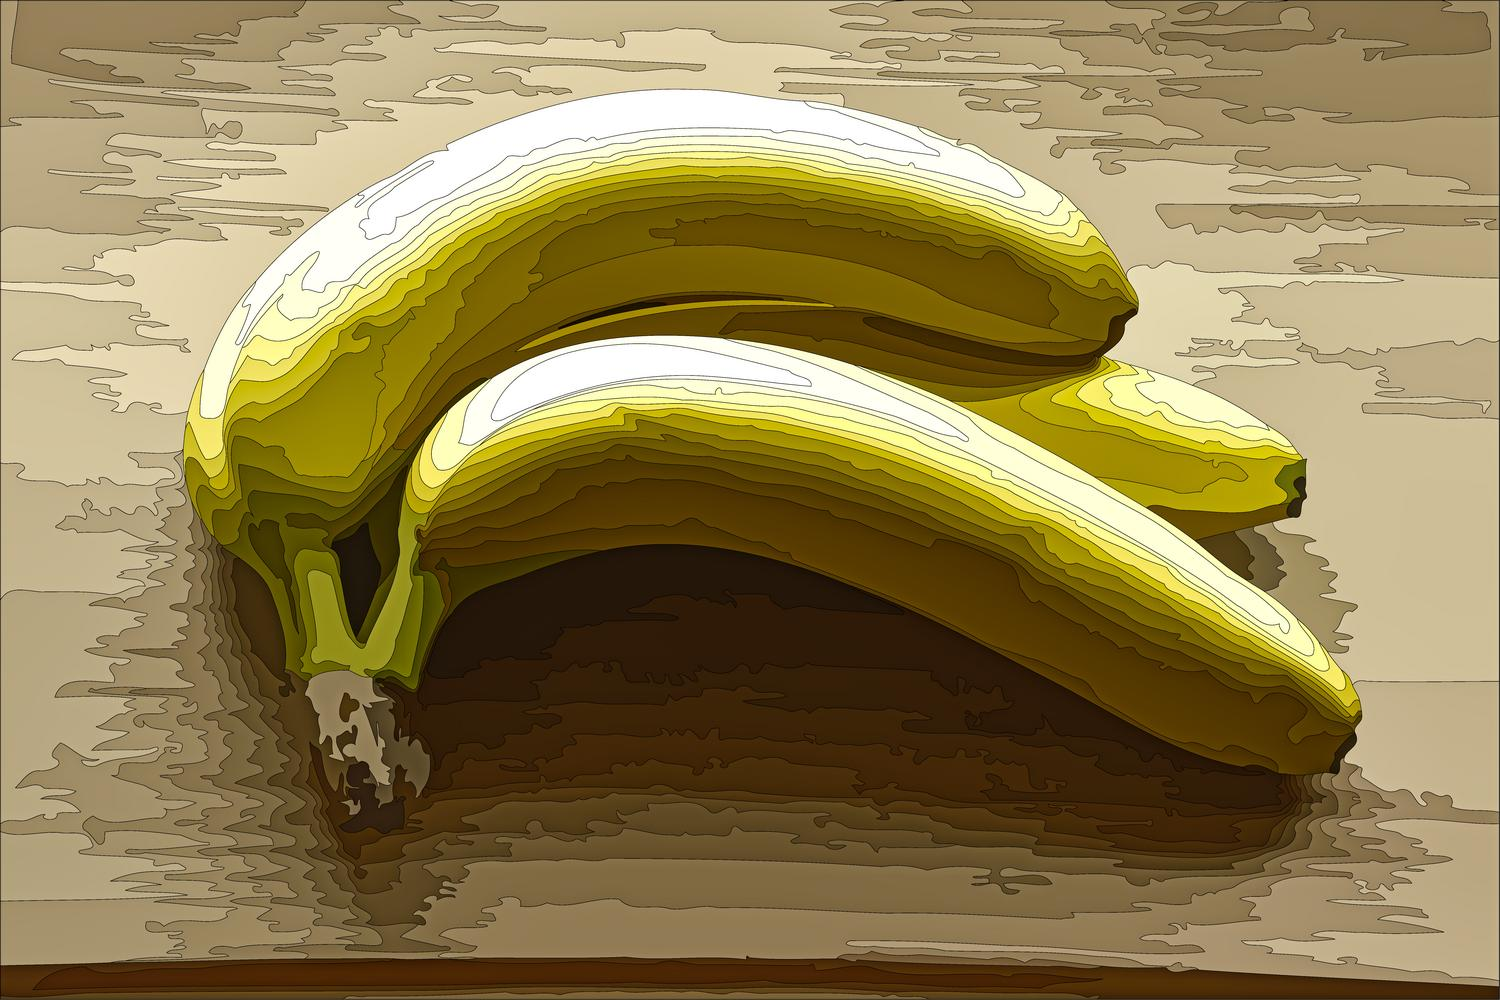 - Bananas with isochromatic zones delineated -  - taken with Sony DSC-R1 - Tony Karp, design, art, photography, techno-impressionist, techno-impressionism, aerial photography , drone , drones , dji , mavic pro , video , 3D printing - Books -